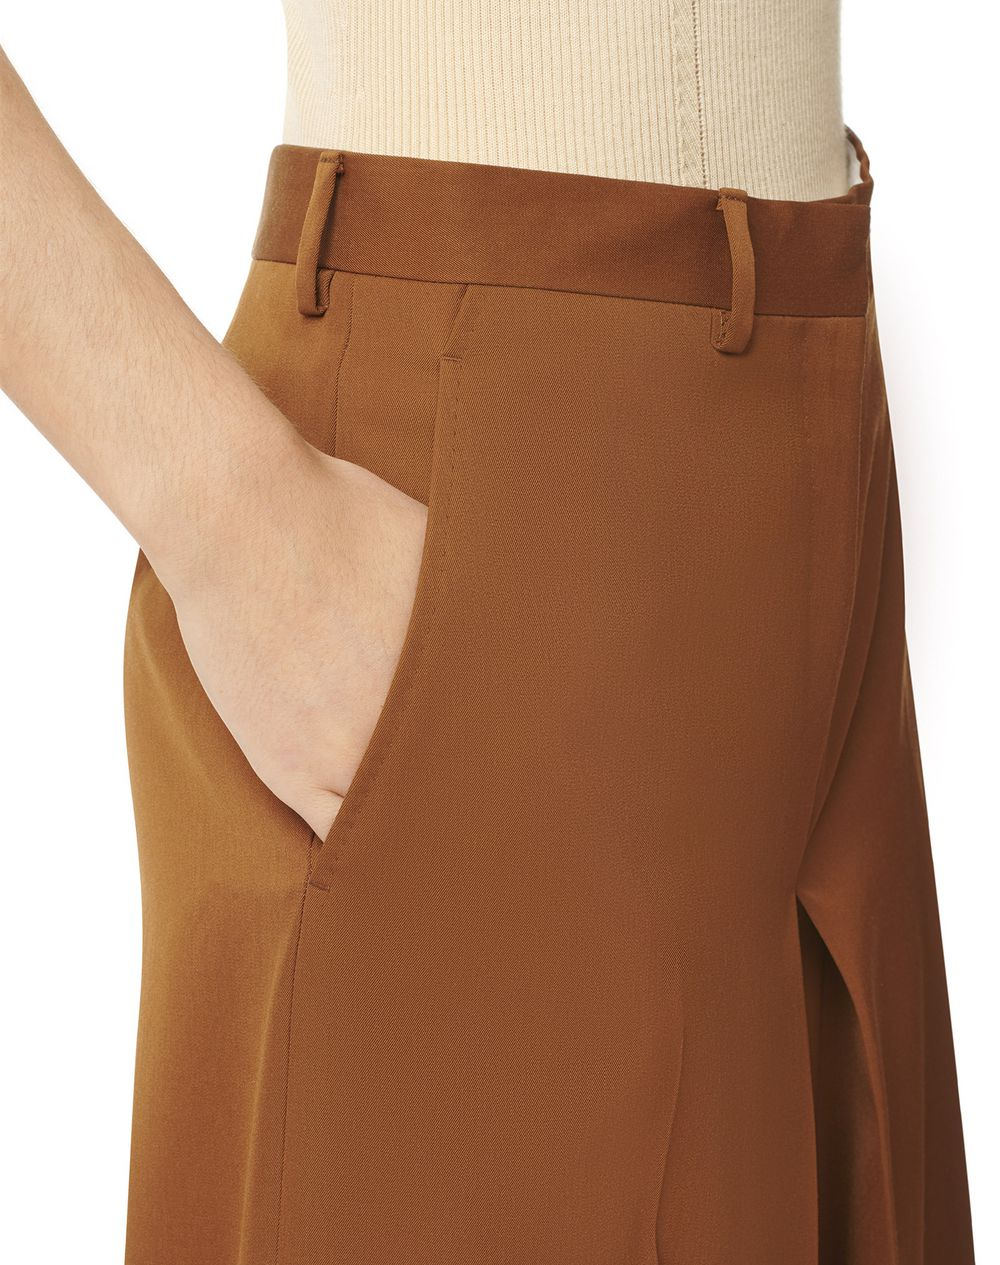 LARGE LEG PANTS - Lanvin